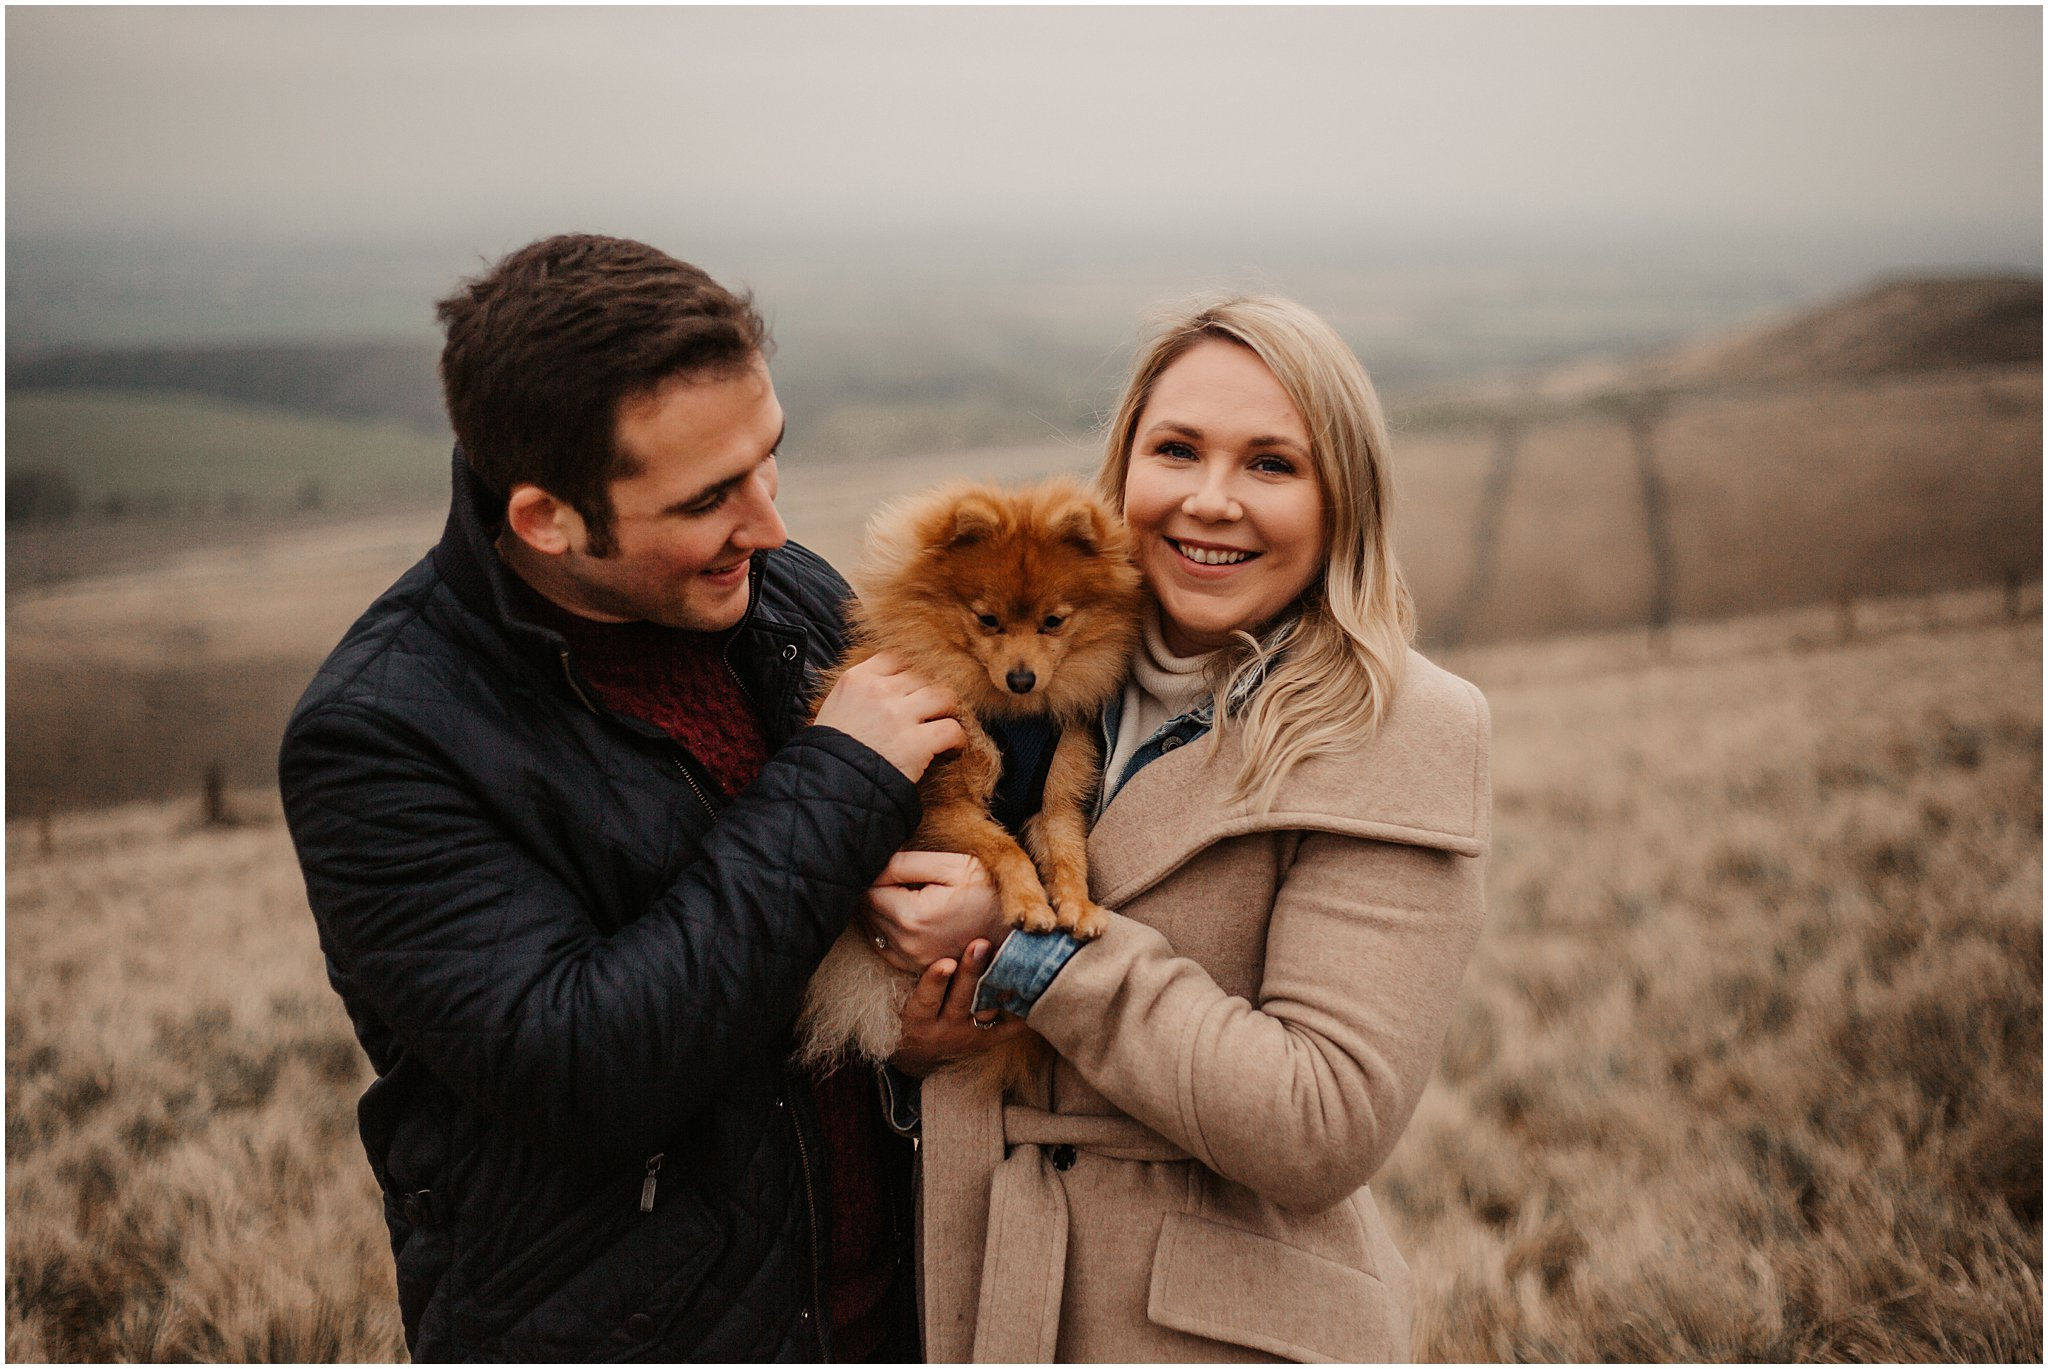 Mike & Charley_s Winter Engagement Shoot Wiltshire-24.jpg